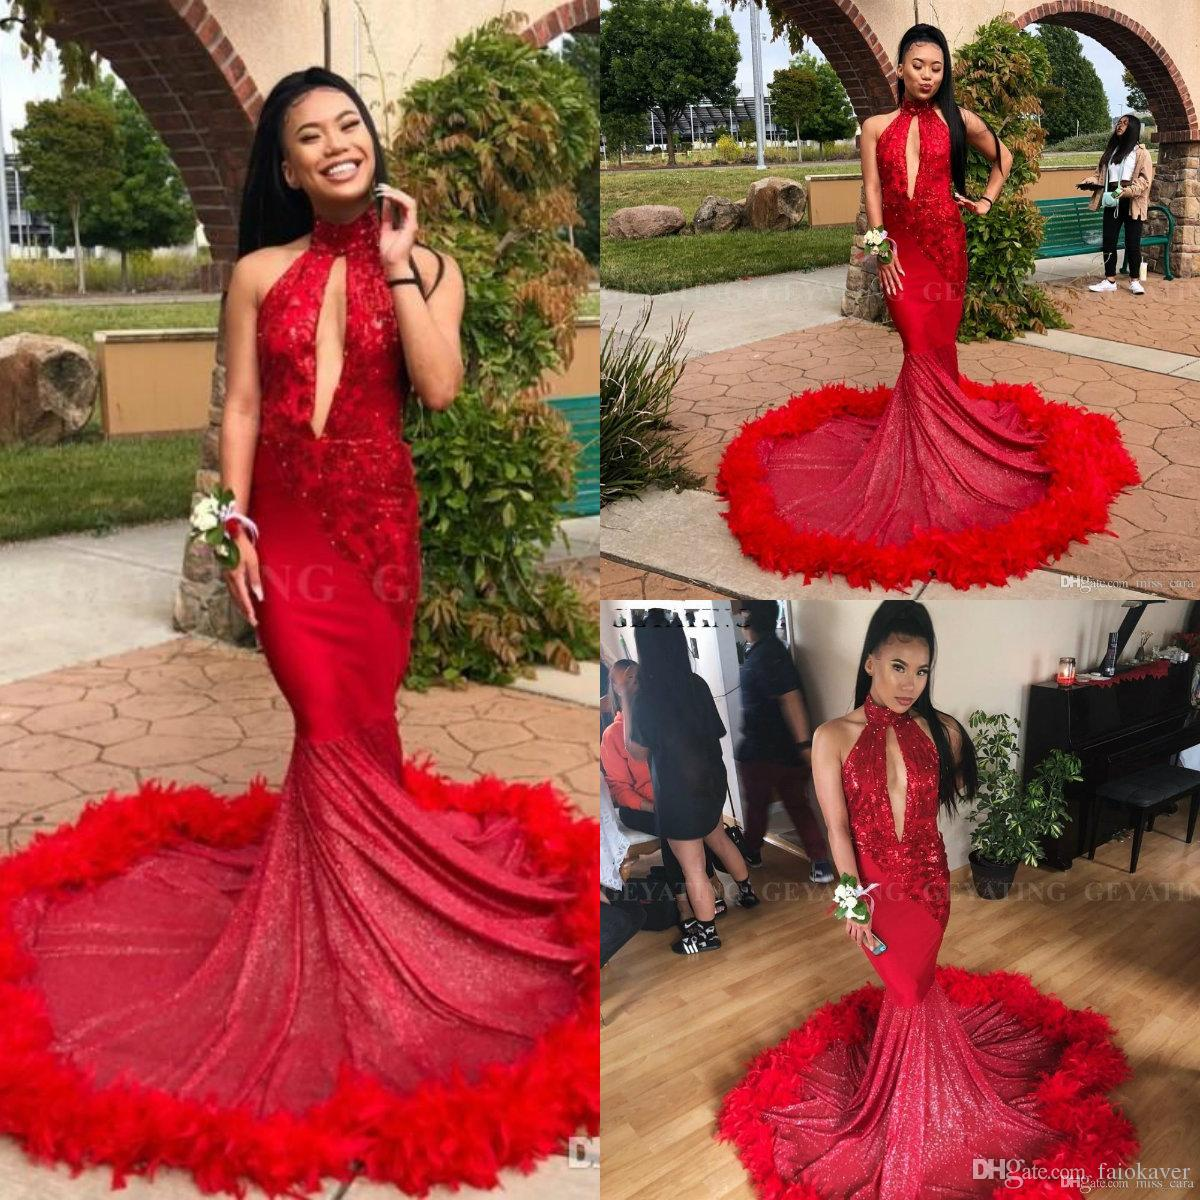 96415dc0fa 2019 Sexy Mermaid Prom Dress Long Train Red Feather Sparkly Sequins  Appliques High Neck Evening Gowns African Graduation Party Dresses Mint  Green Prom ...